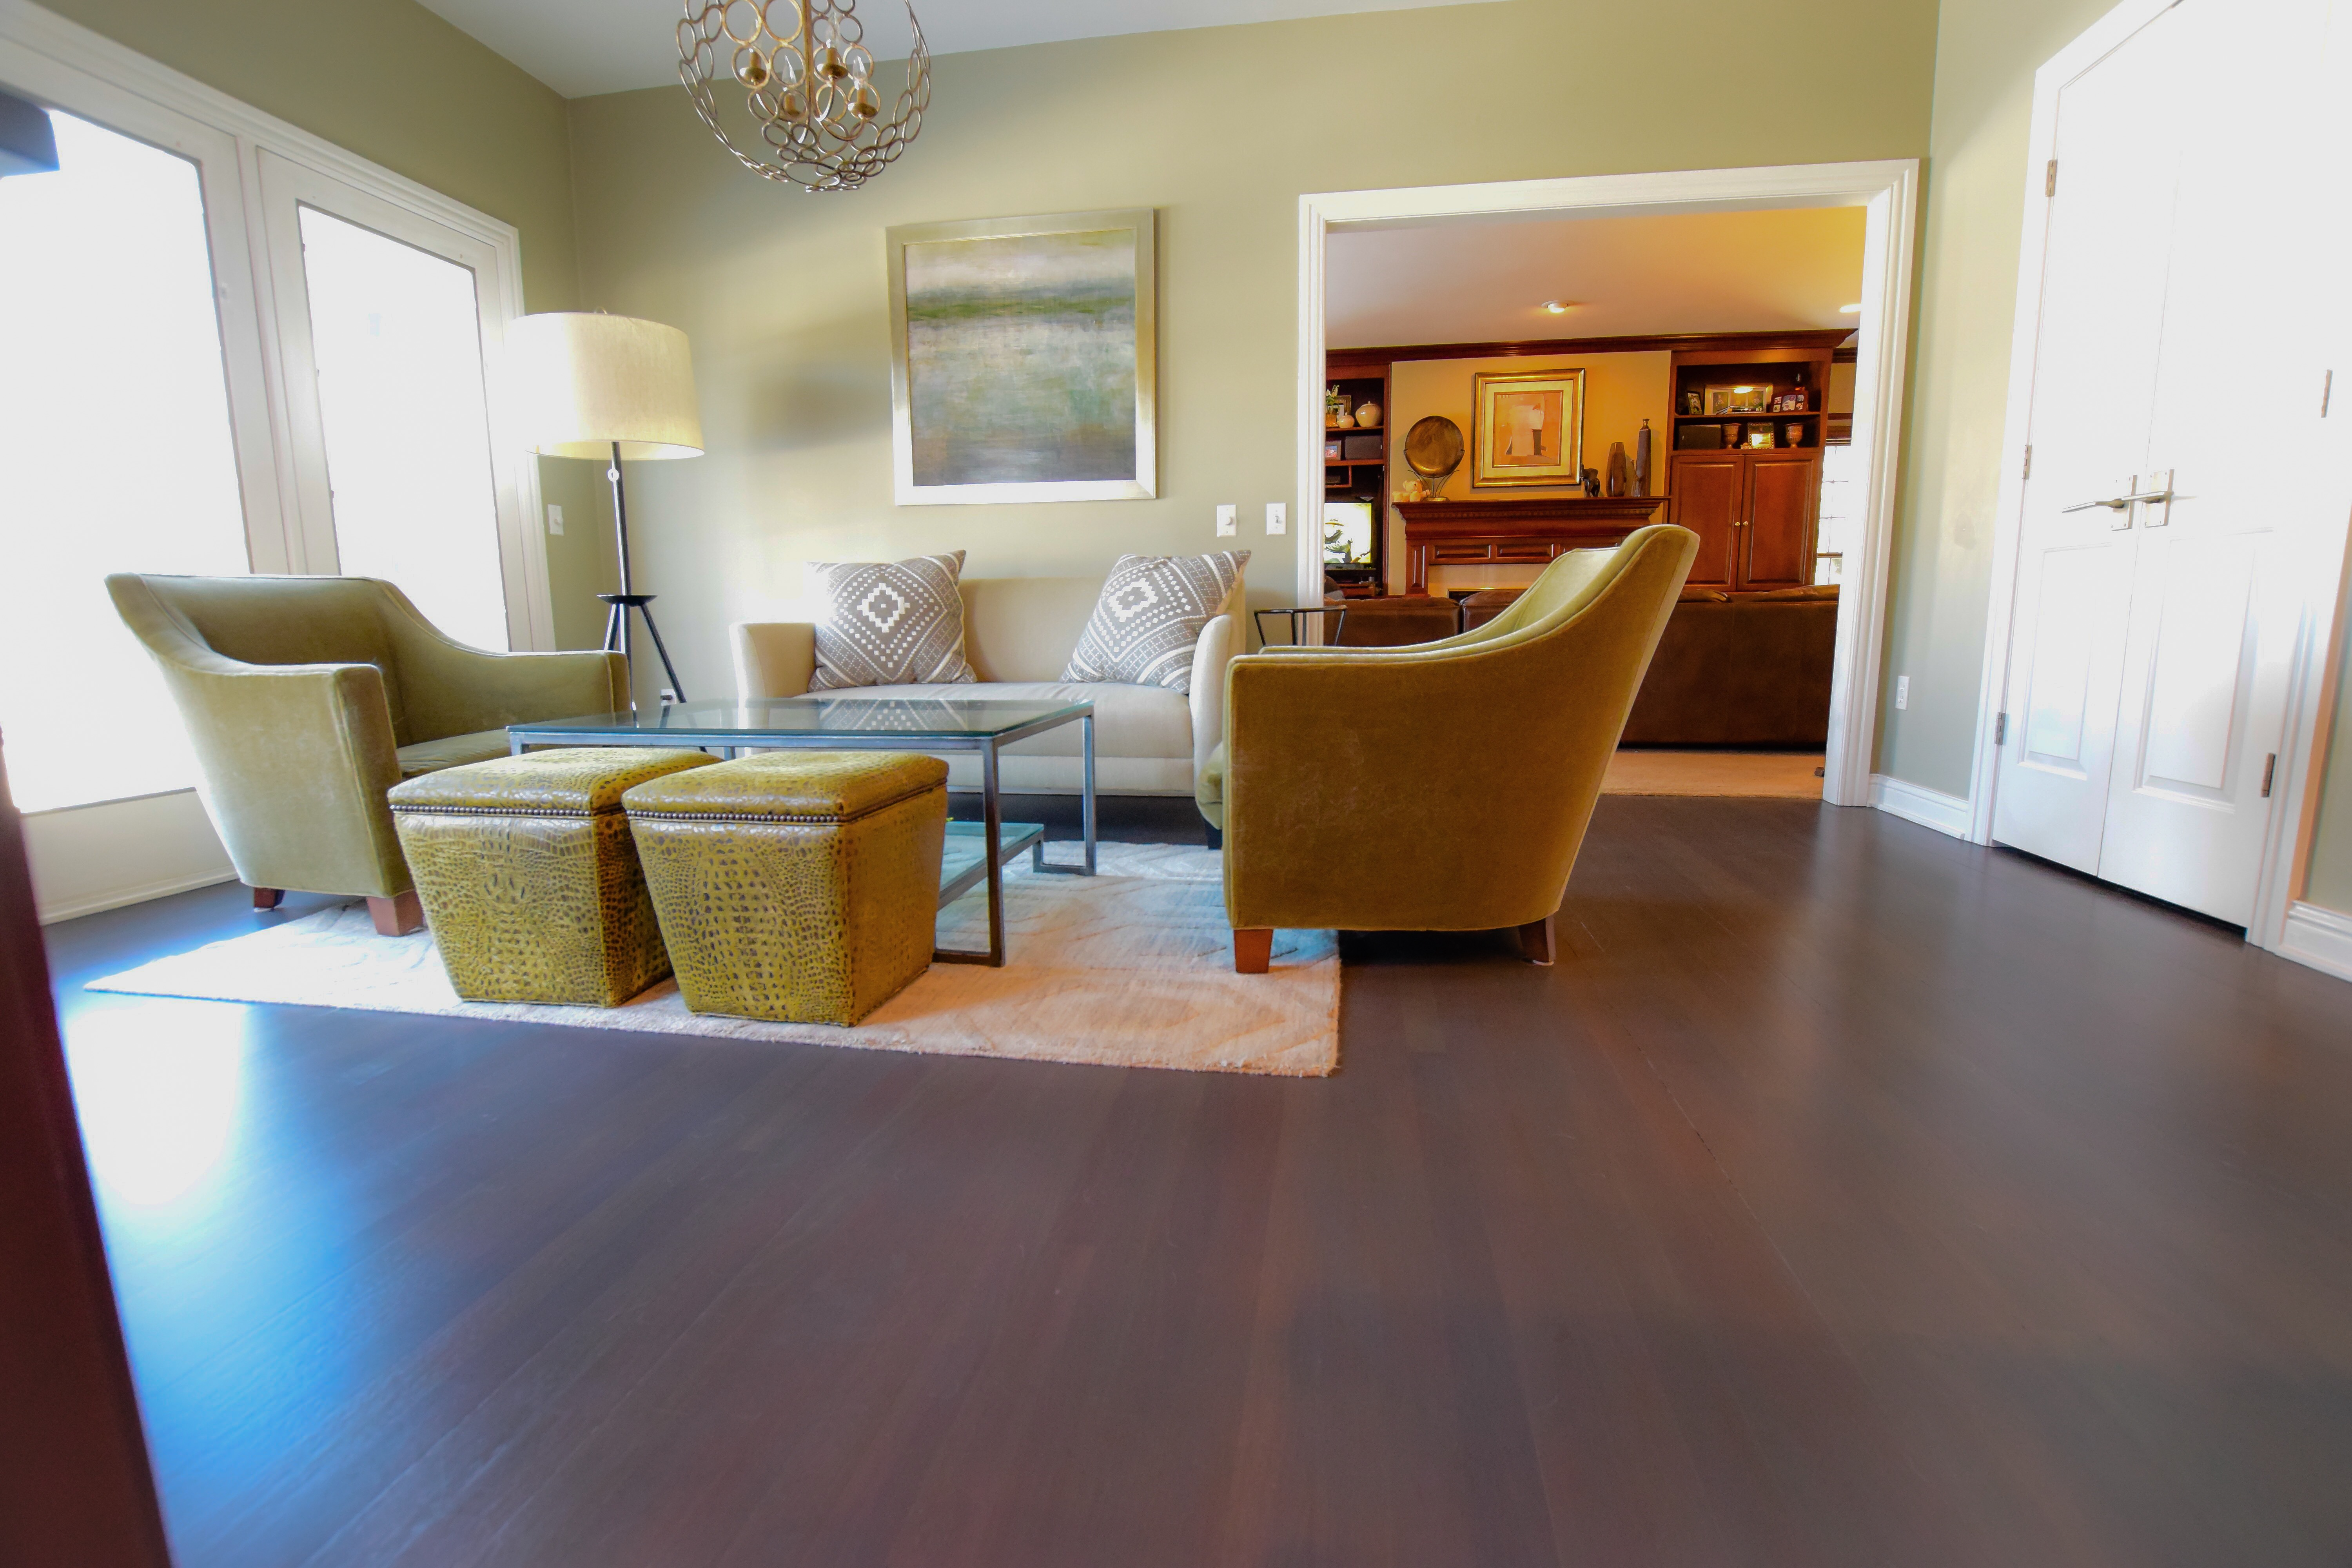 services degree inc brazillian cherry kendall at installed estimate home custom flooring free hardwood floors hickory wood contact angle s request us steps with and a